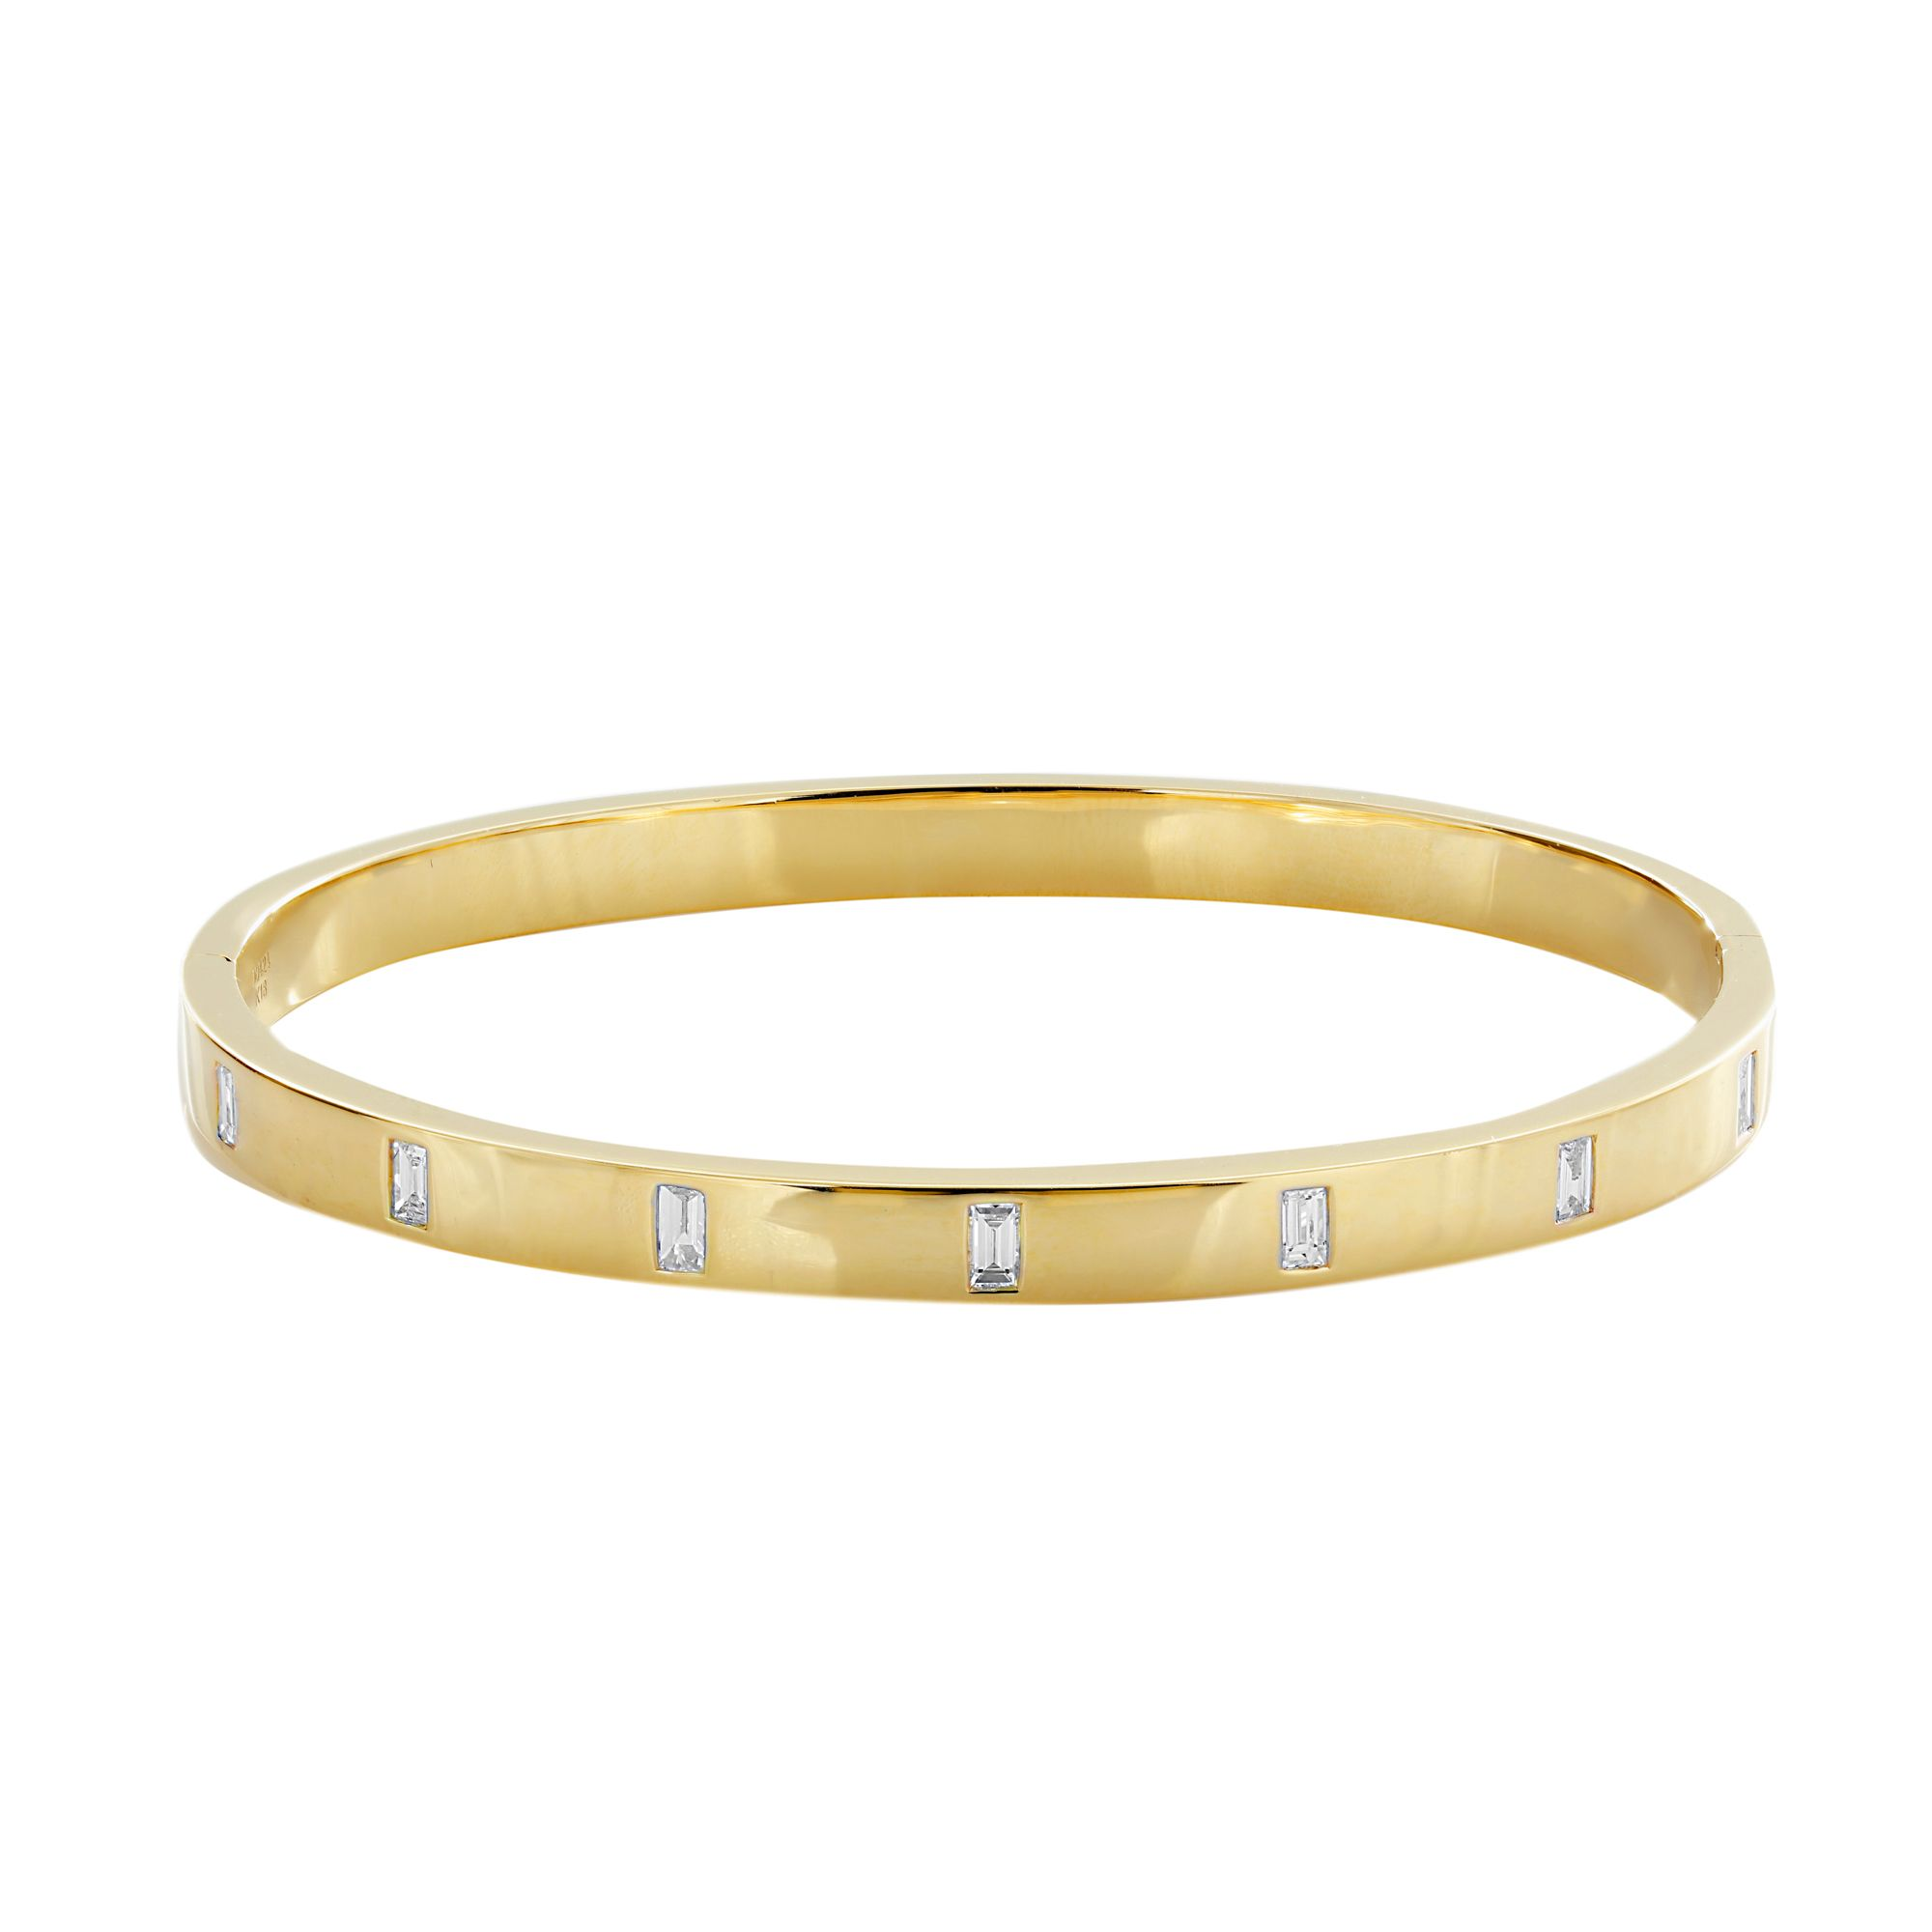 London Collection Baguette 18k Yellow Gold Diamond Bangle Bracelet